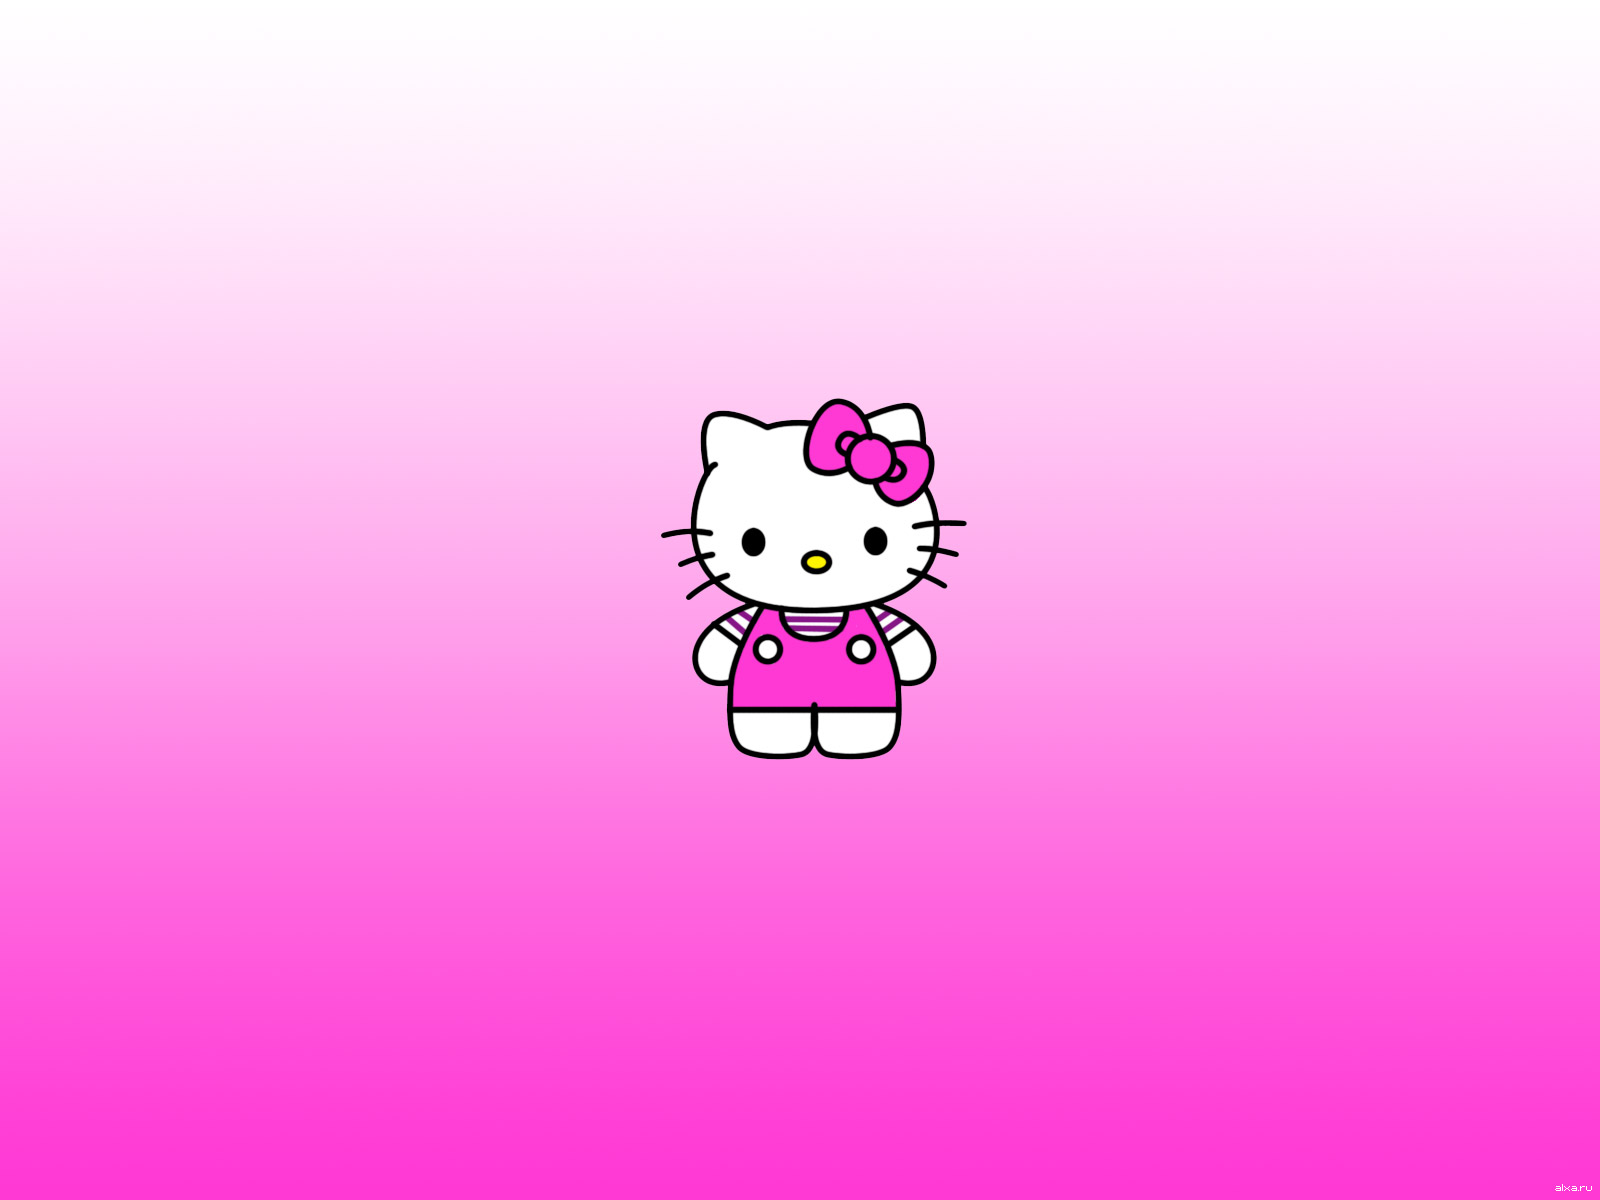 HD Pink Hello Kitty Wallpaper Hello Kitty Wallpapers 1600x1200